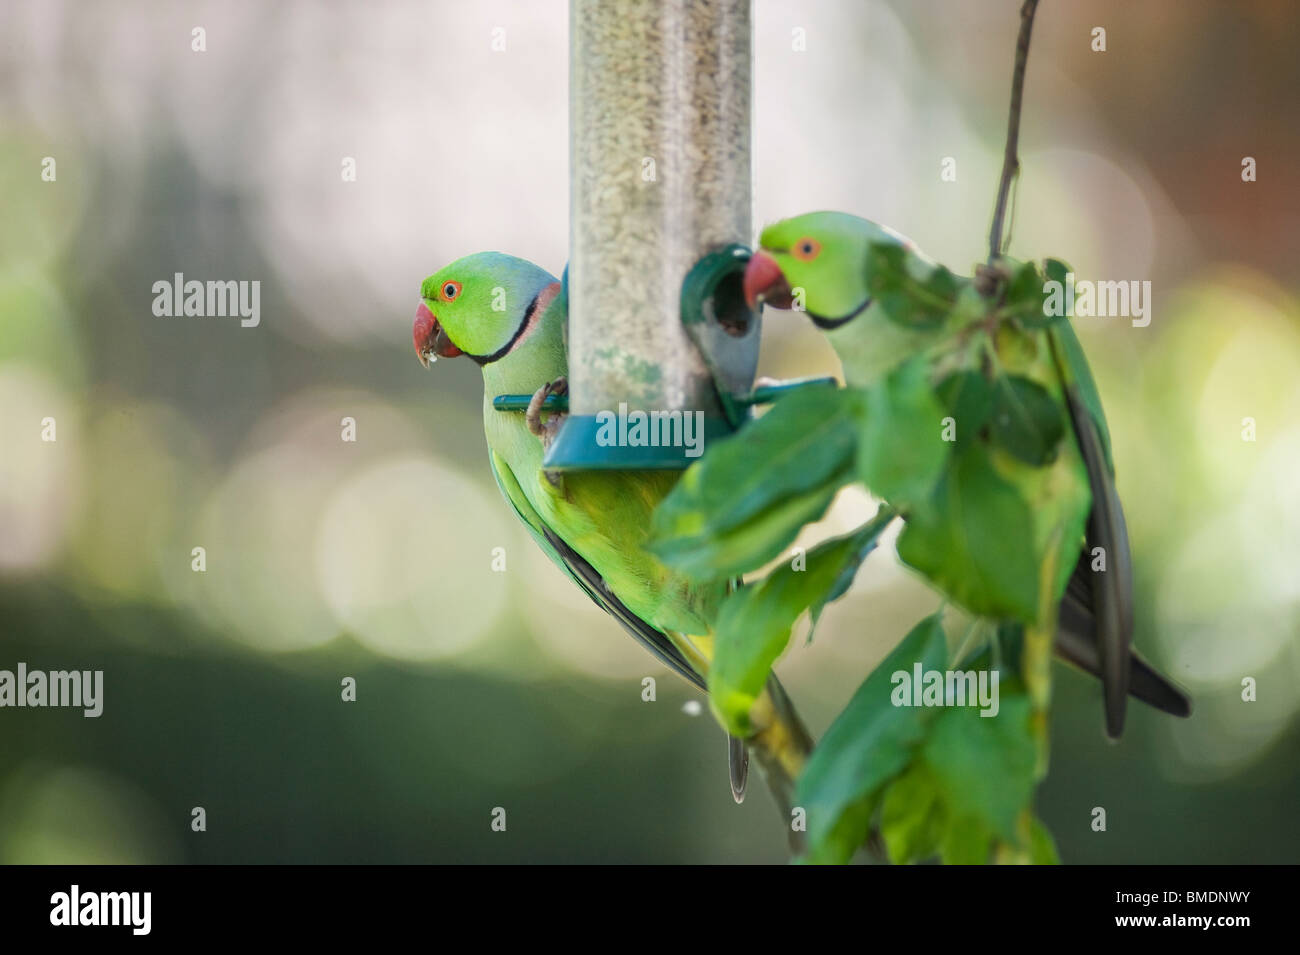 Wild Ring Necked Parakeets on nut feeder, London, England, UK Stock Photo